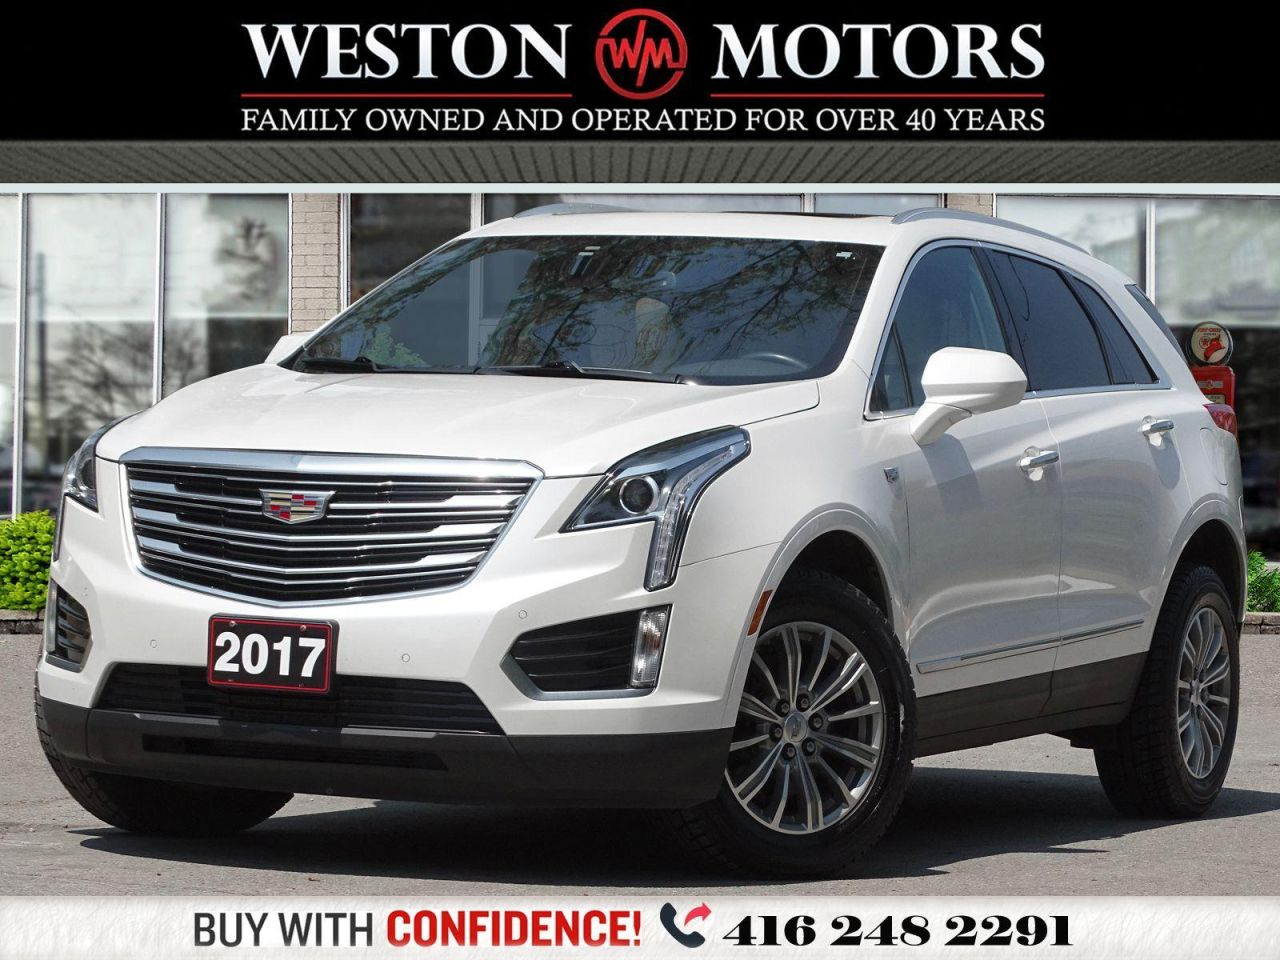 2017 Cadillac XT5 PANORAMIC SUNROOF*LEATHER*REVERSE CAMERA